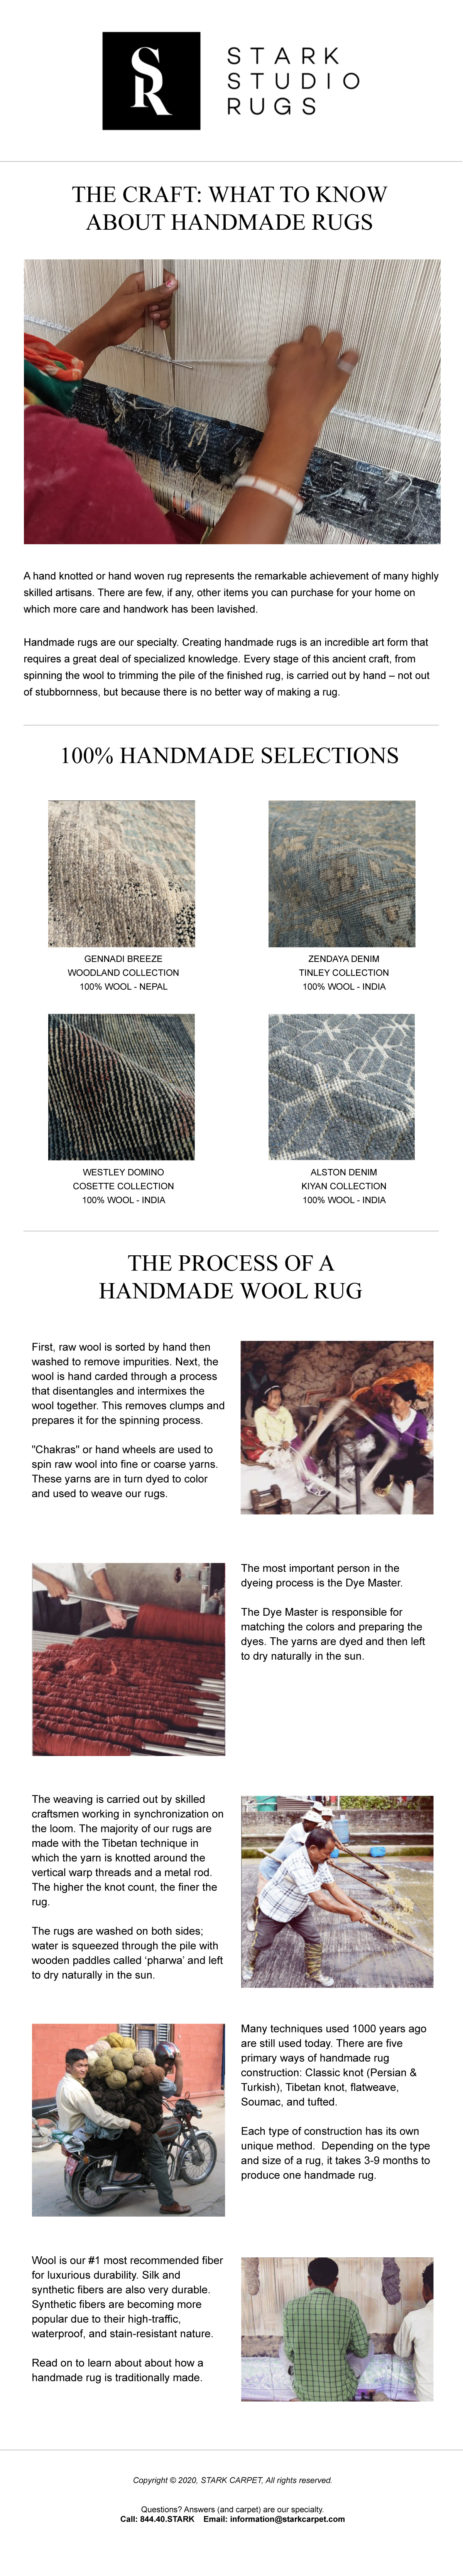 Image of blog post for Stark studio rug The Craft: Learn the Value of a Handmade Rug